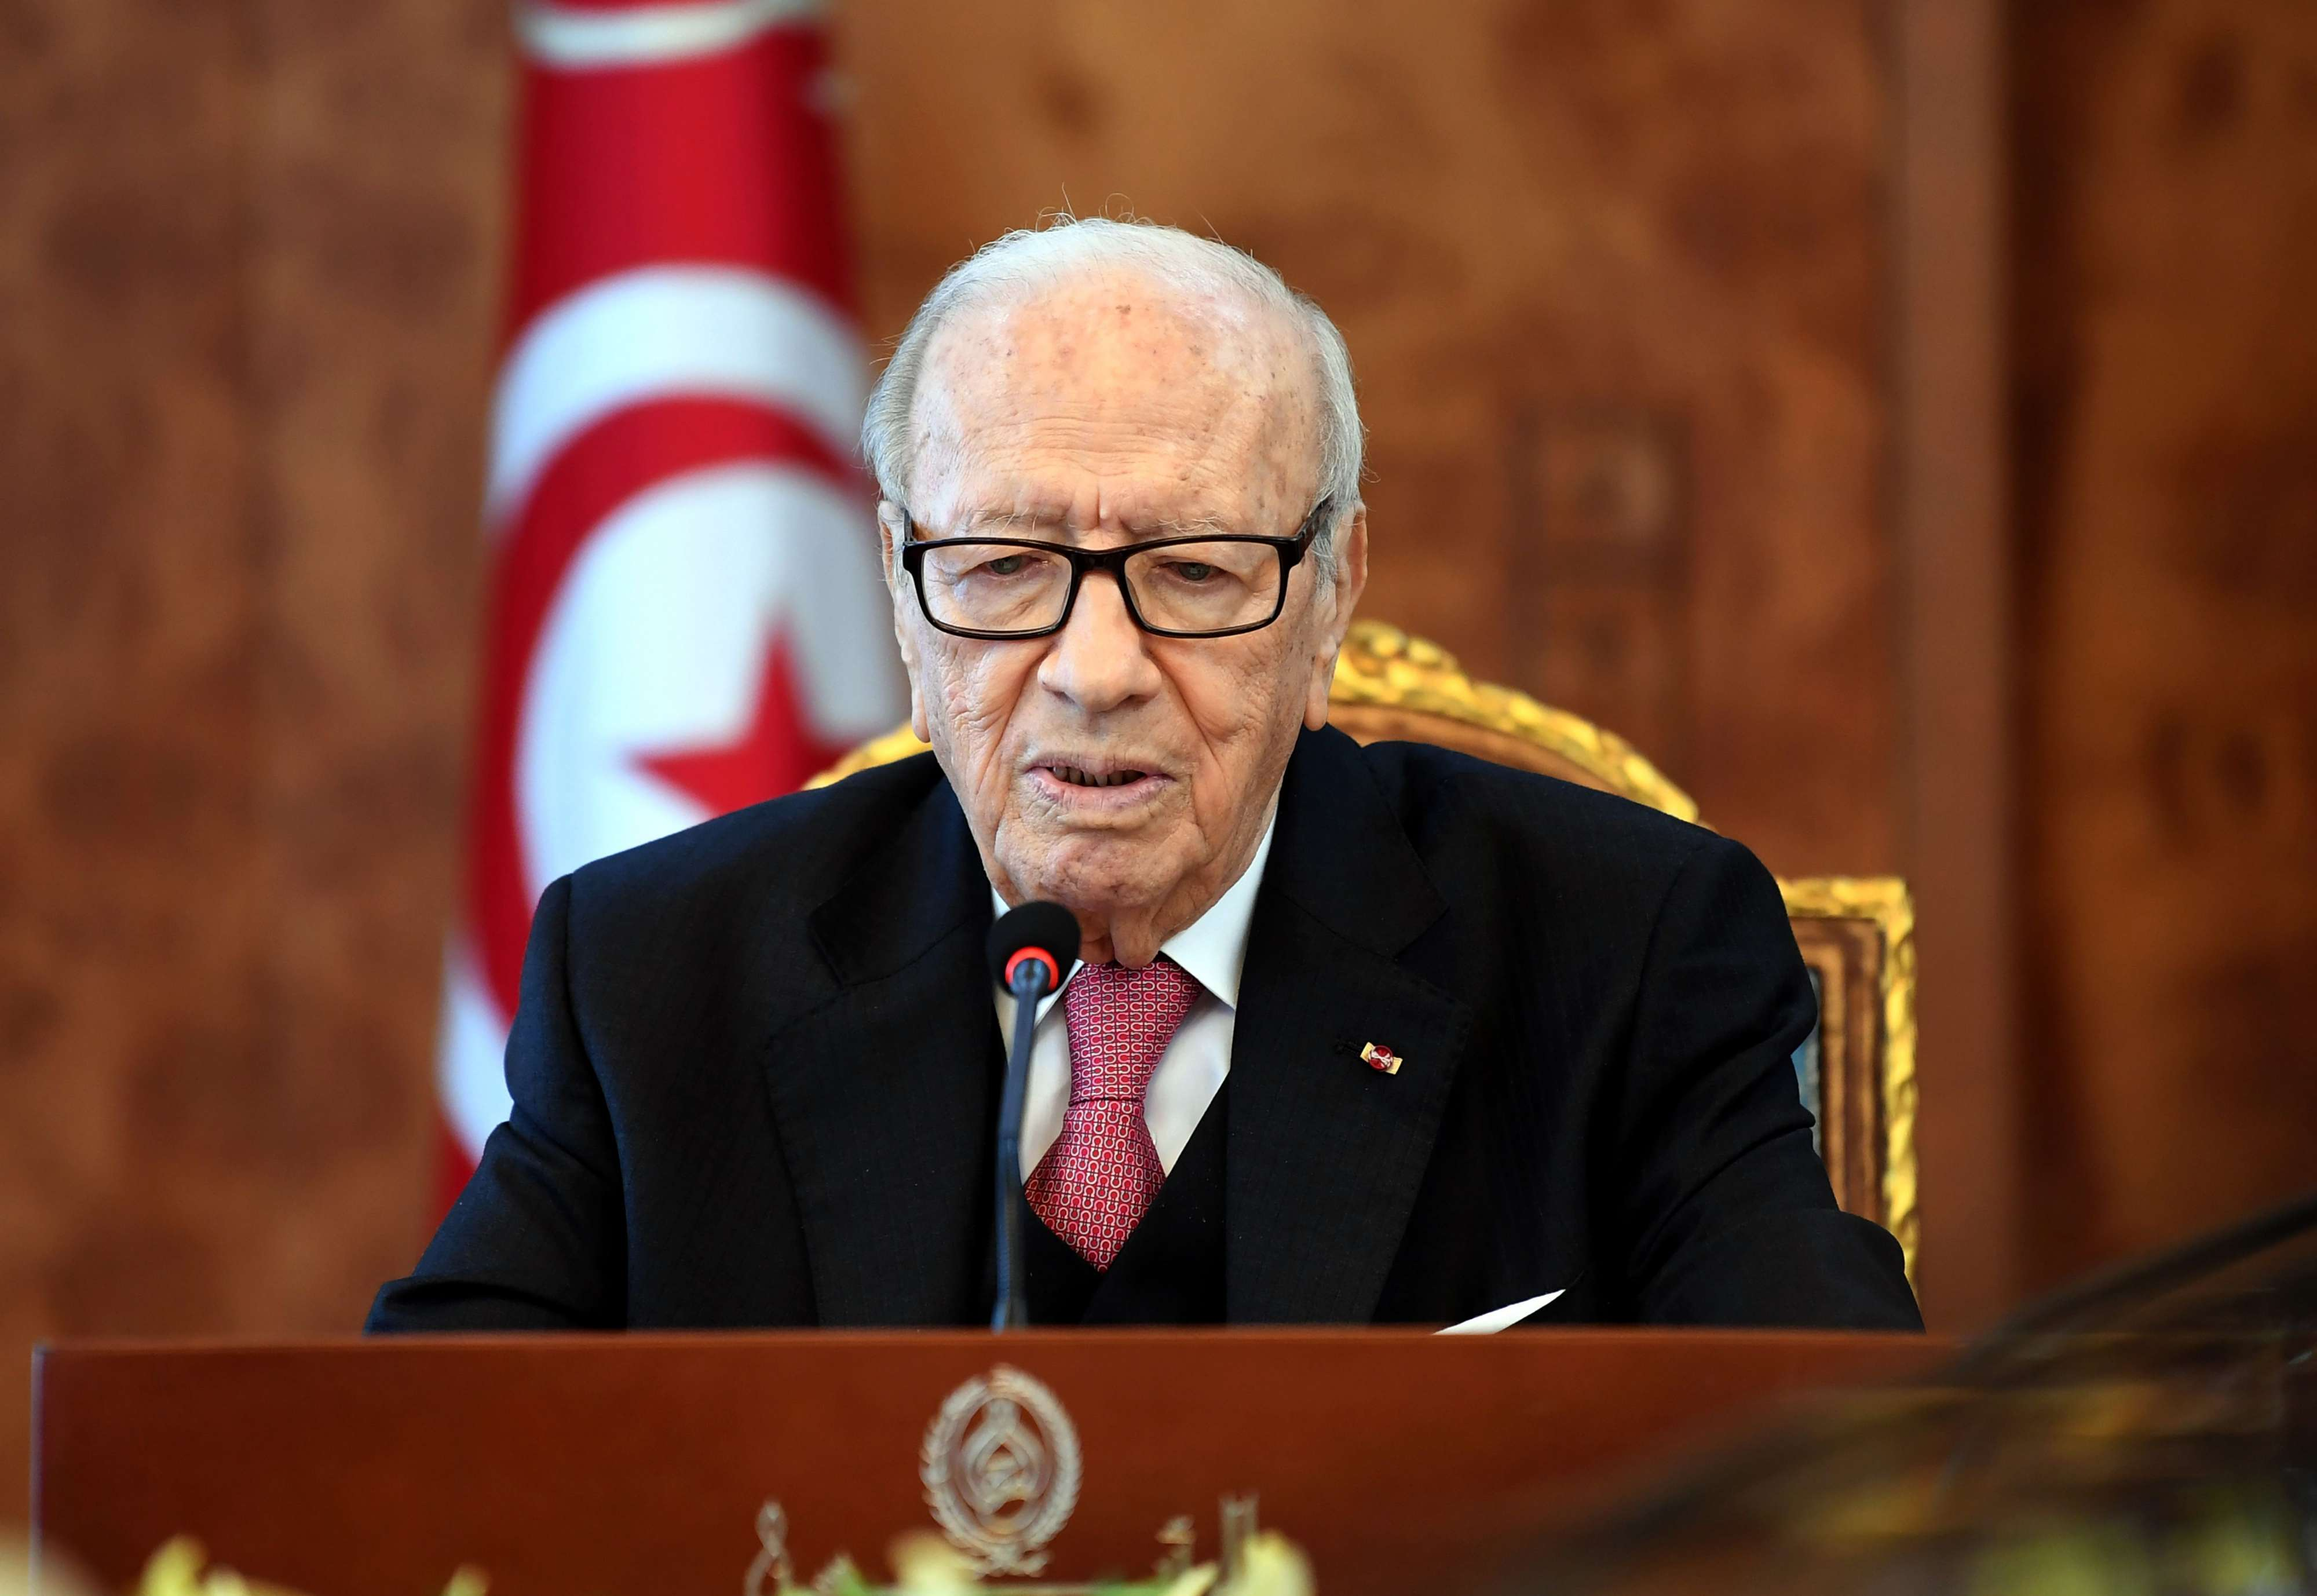 Tunisian President Beji Caid Essebsi attends a meeting with political parties, unions and employers on January 13, 2018 in Tunis, following unrest triggered by austerity measures.